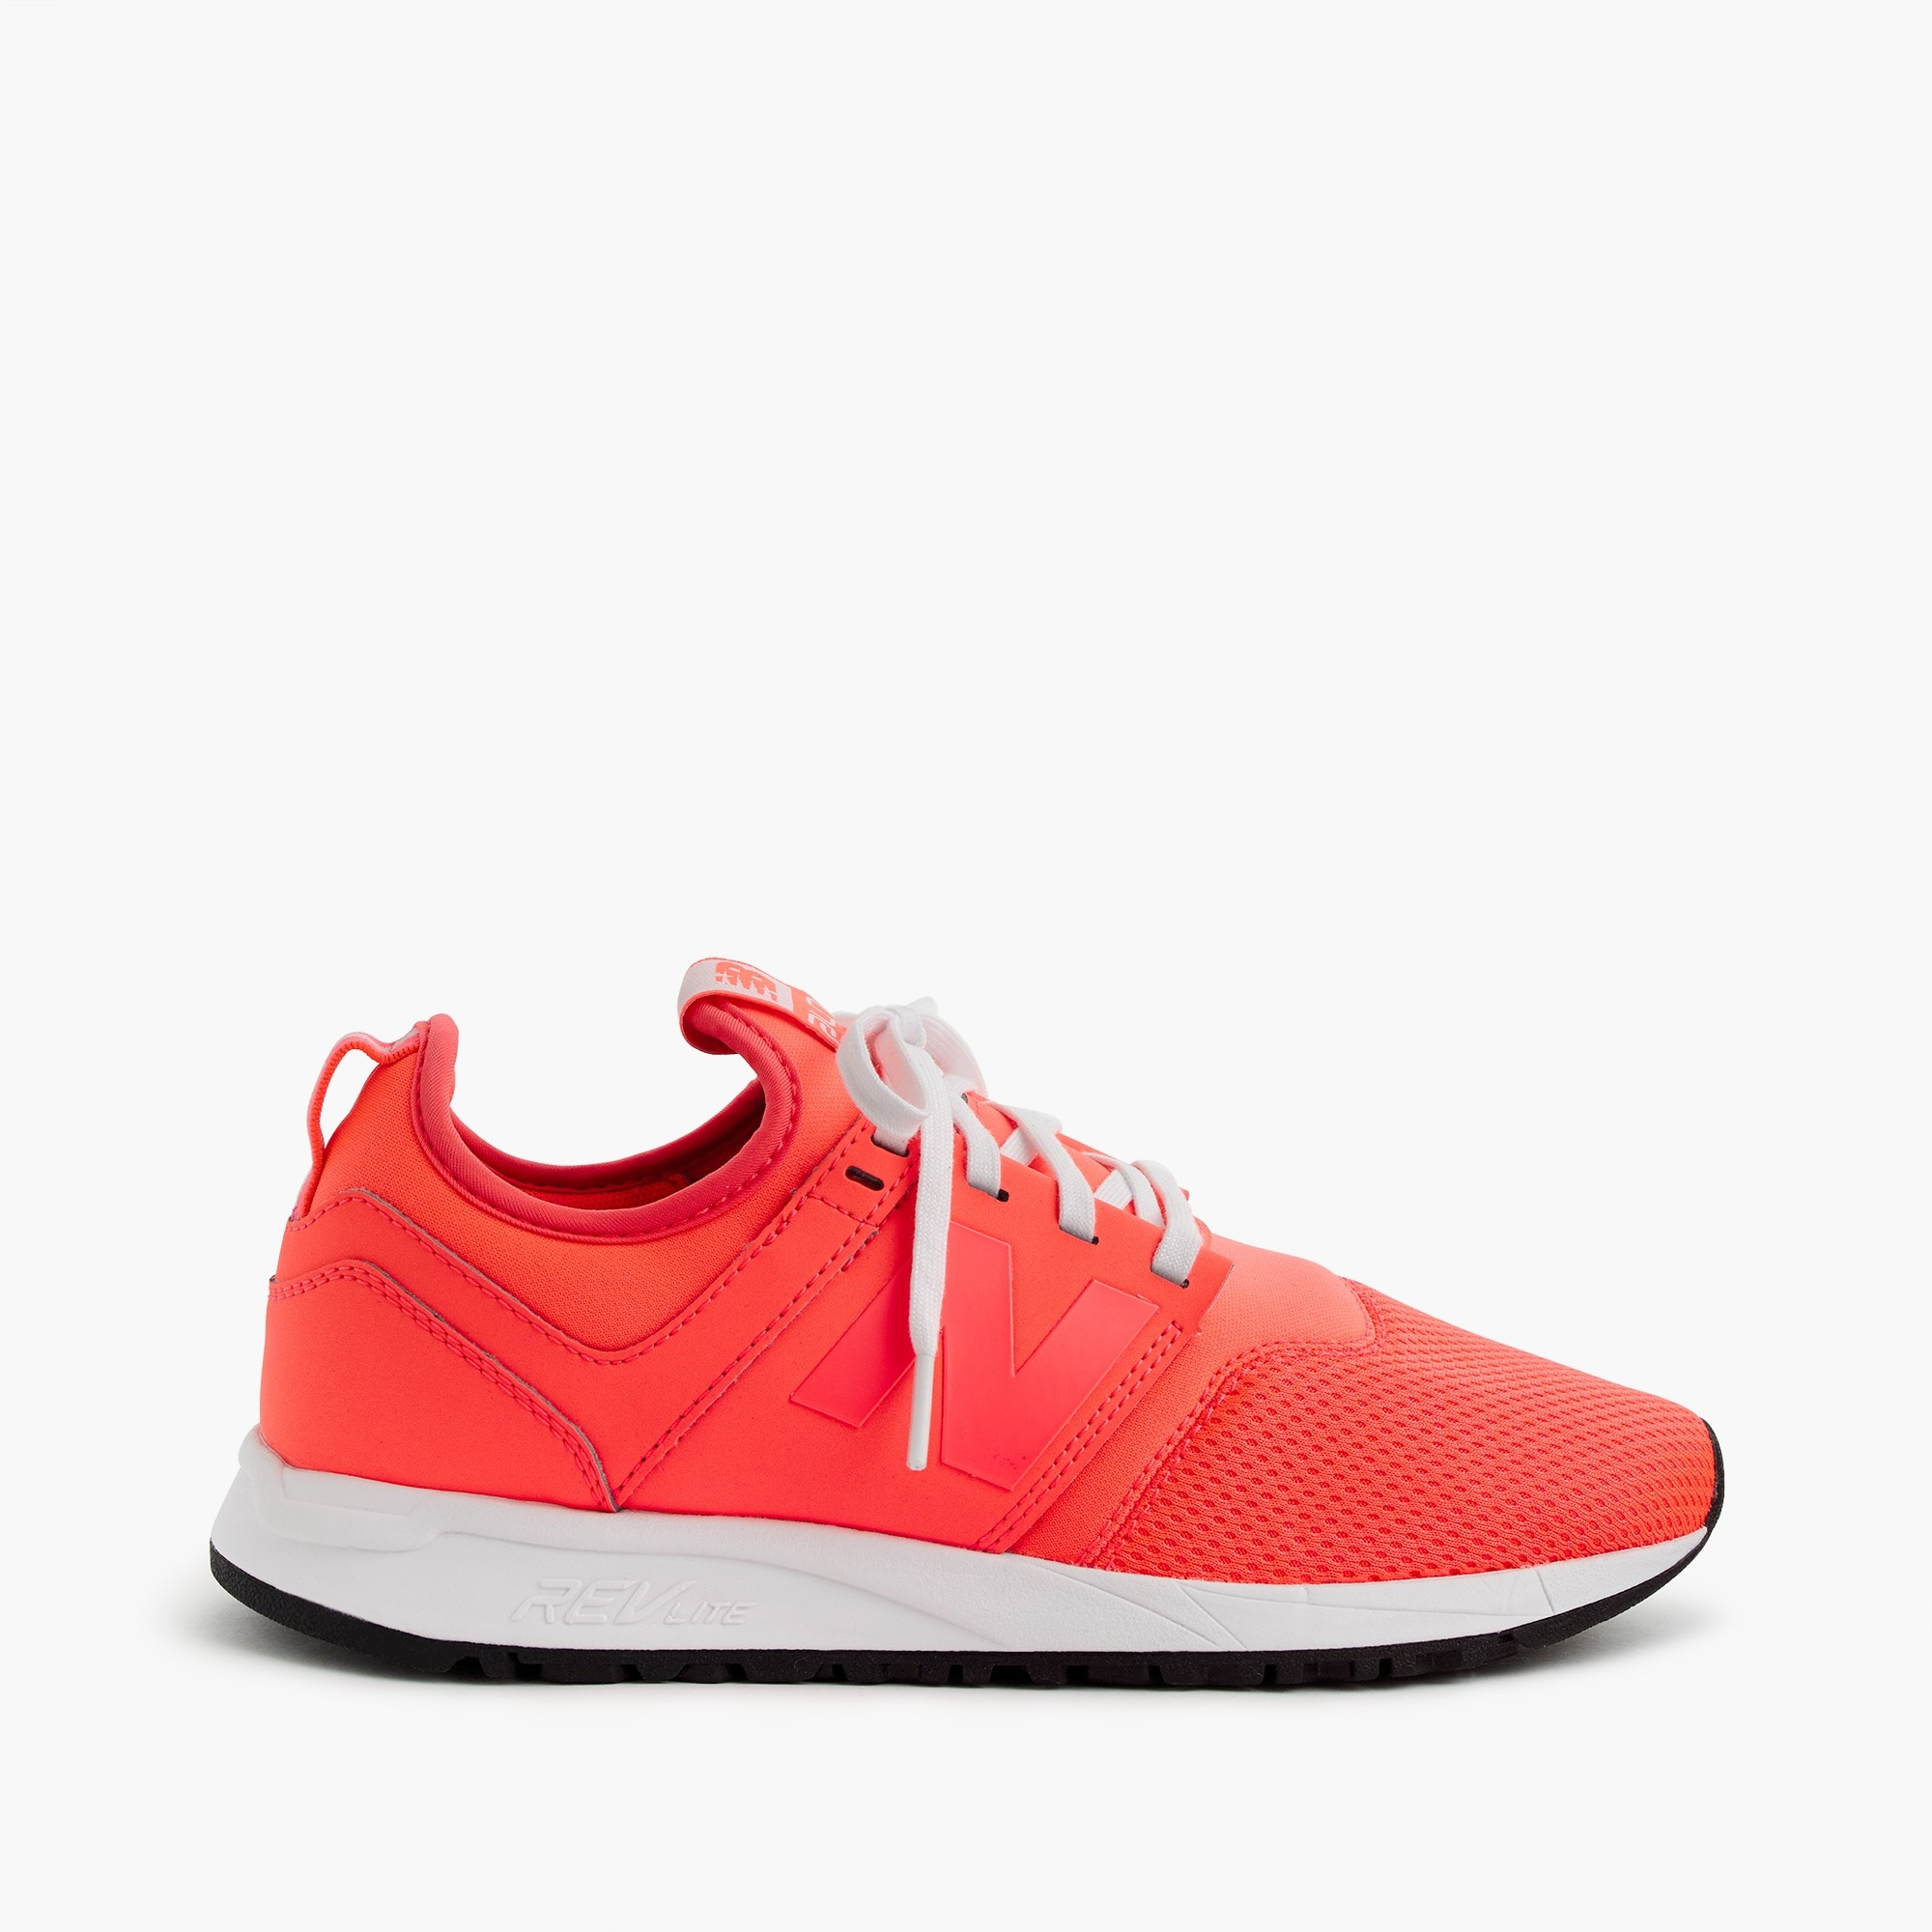 Women's New Balance® for J.Crew 247 sneakers